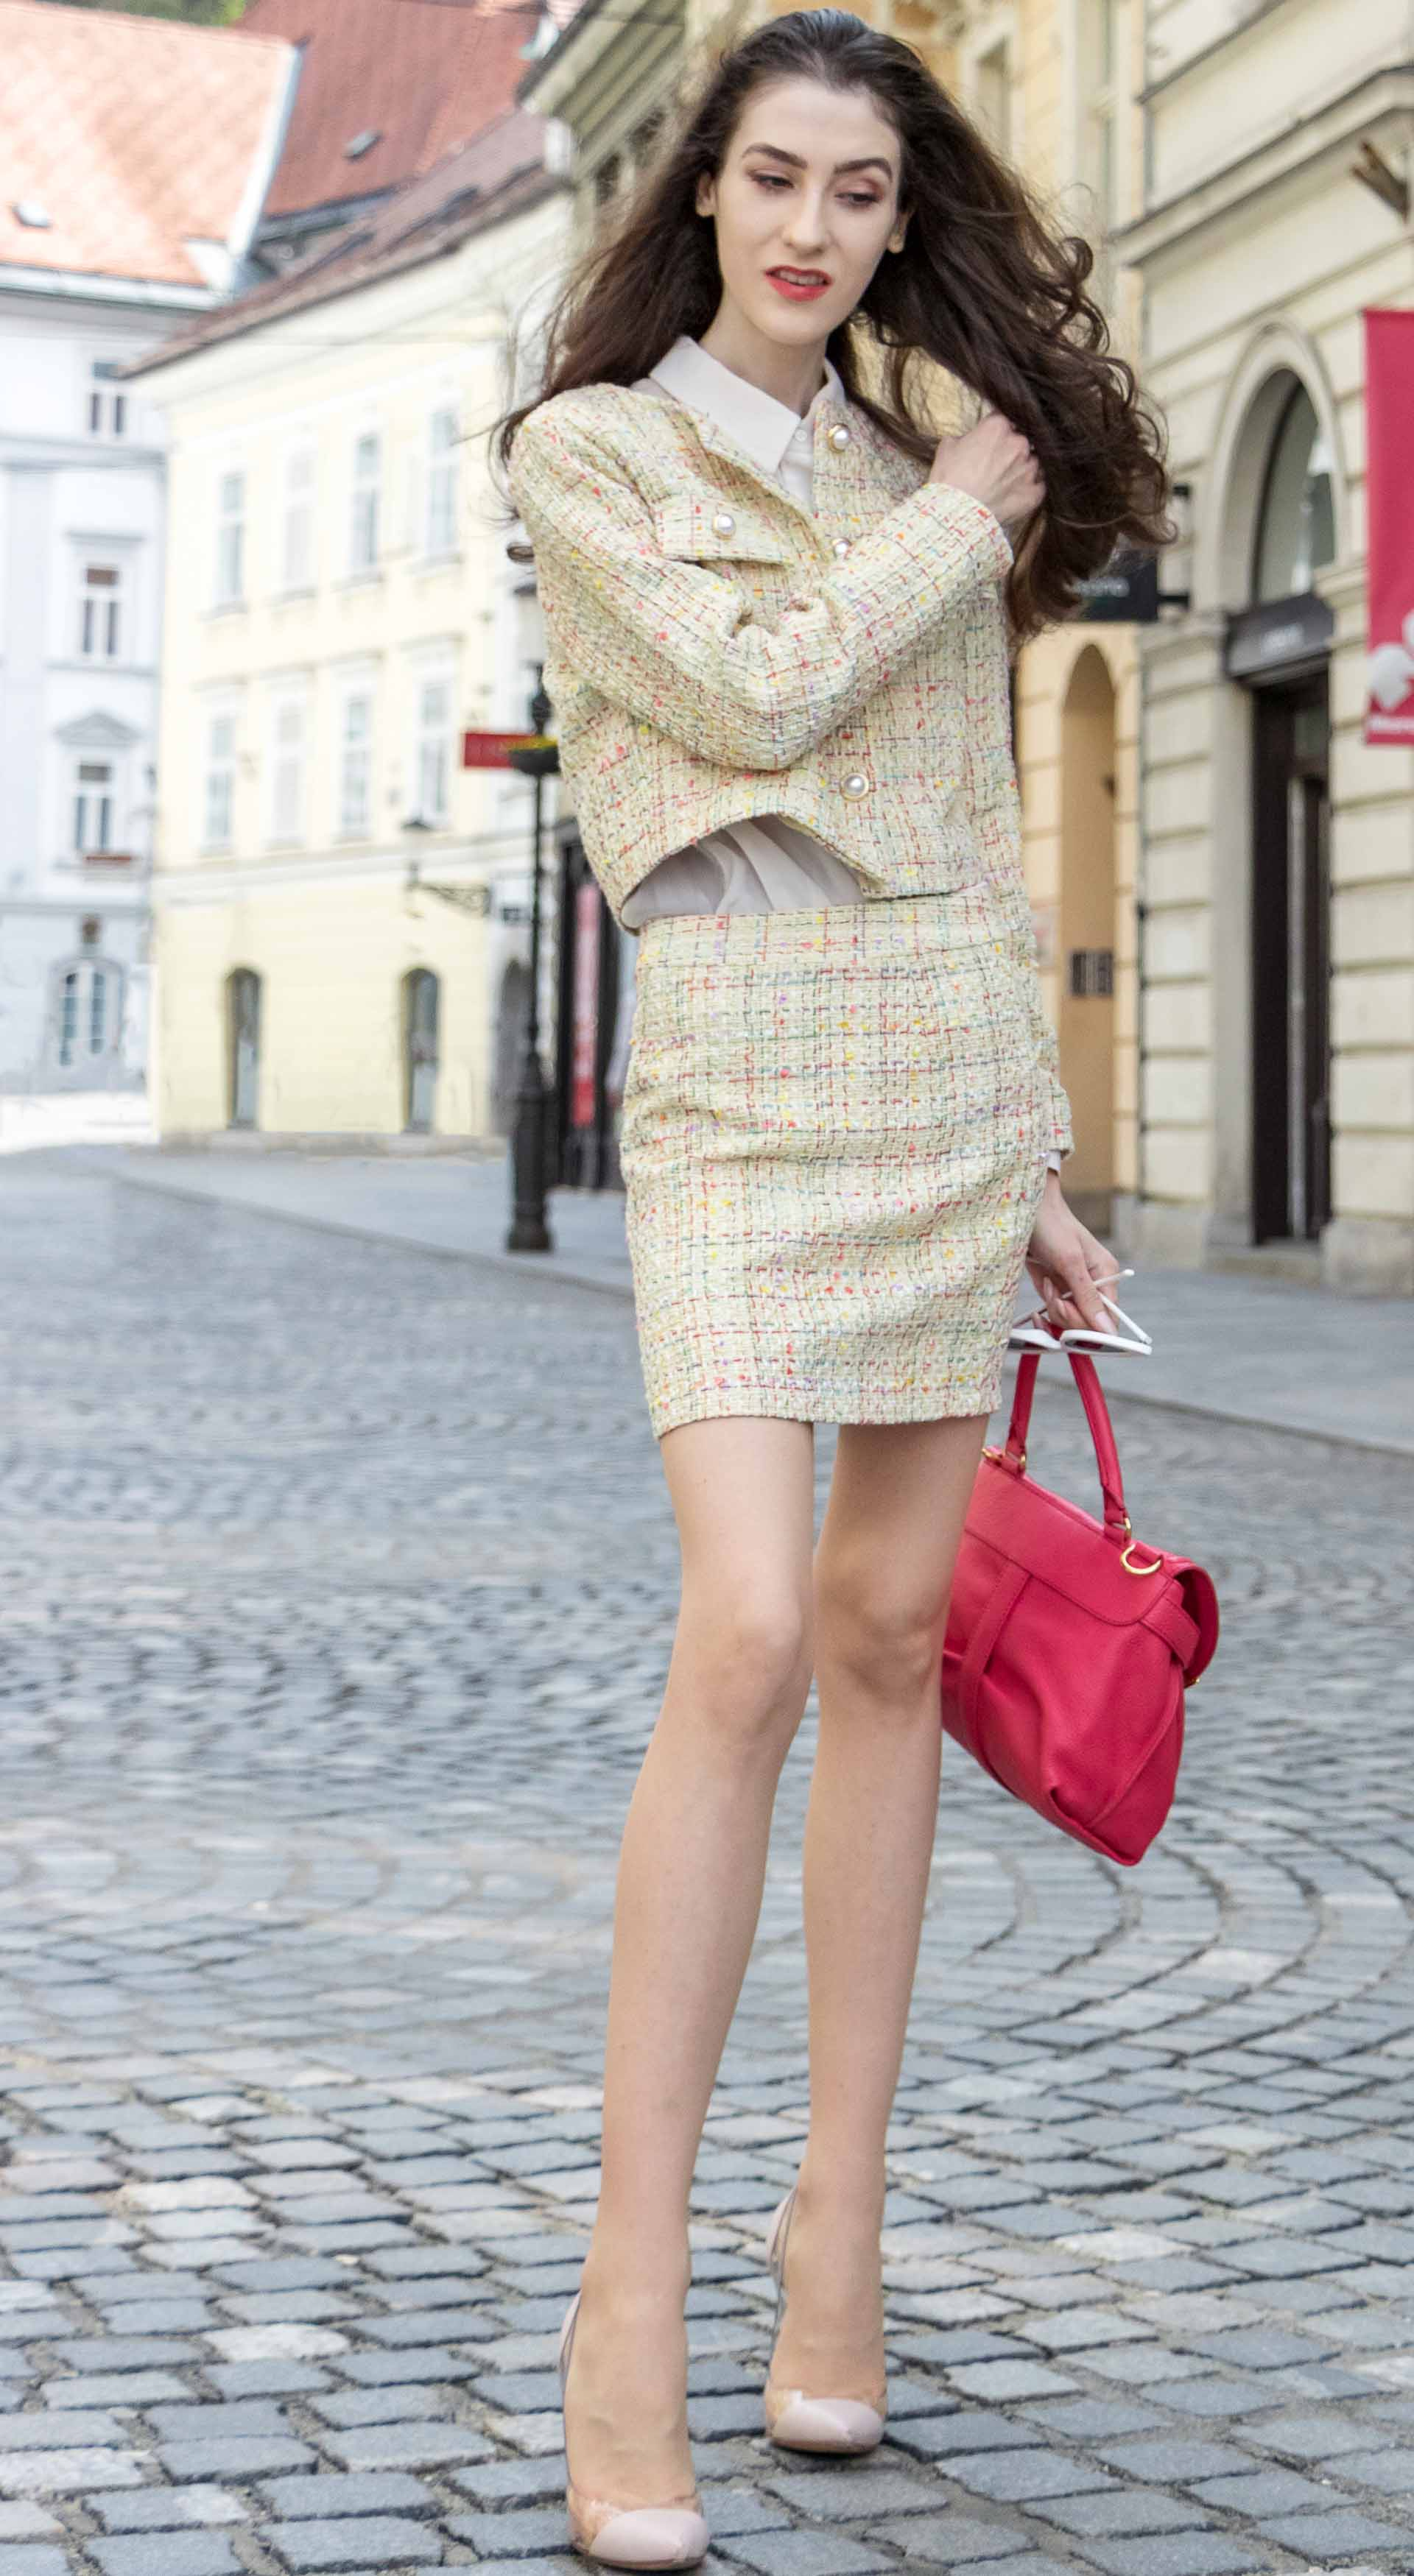 Fashion Blogger Veronika Lipar of Brunette from Wall Street dressed in Storets yellow tweed mini skirt suit, Gianvito Rossi plexi pumps, See by Chloe pink top handle bag on the streets in Ljubljana flipping hair